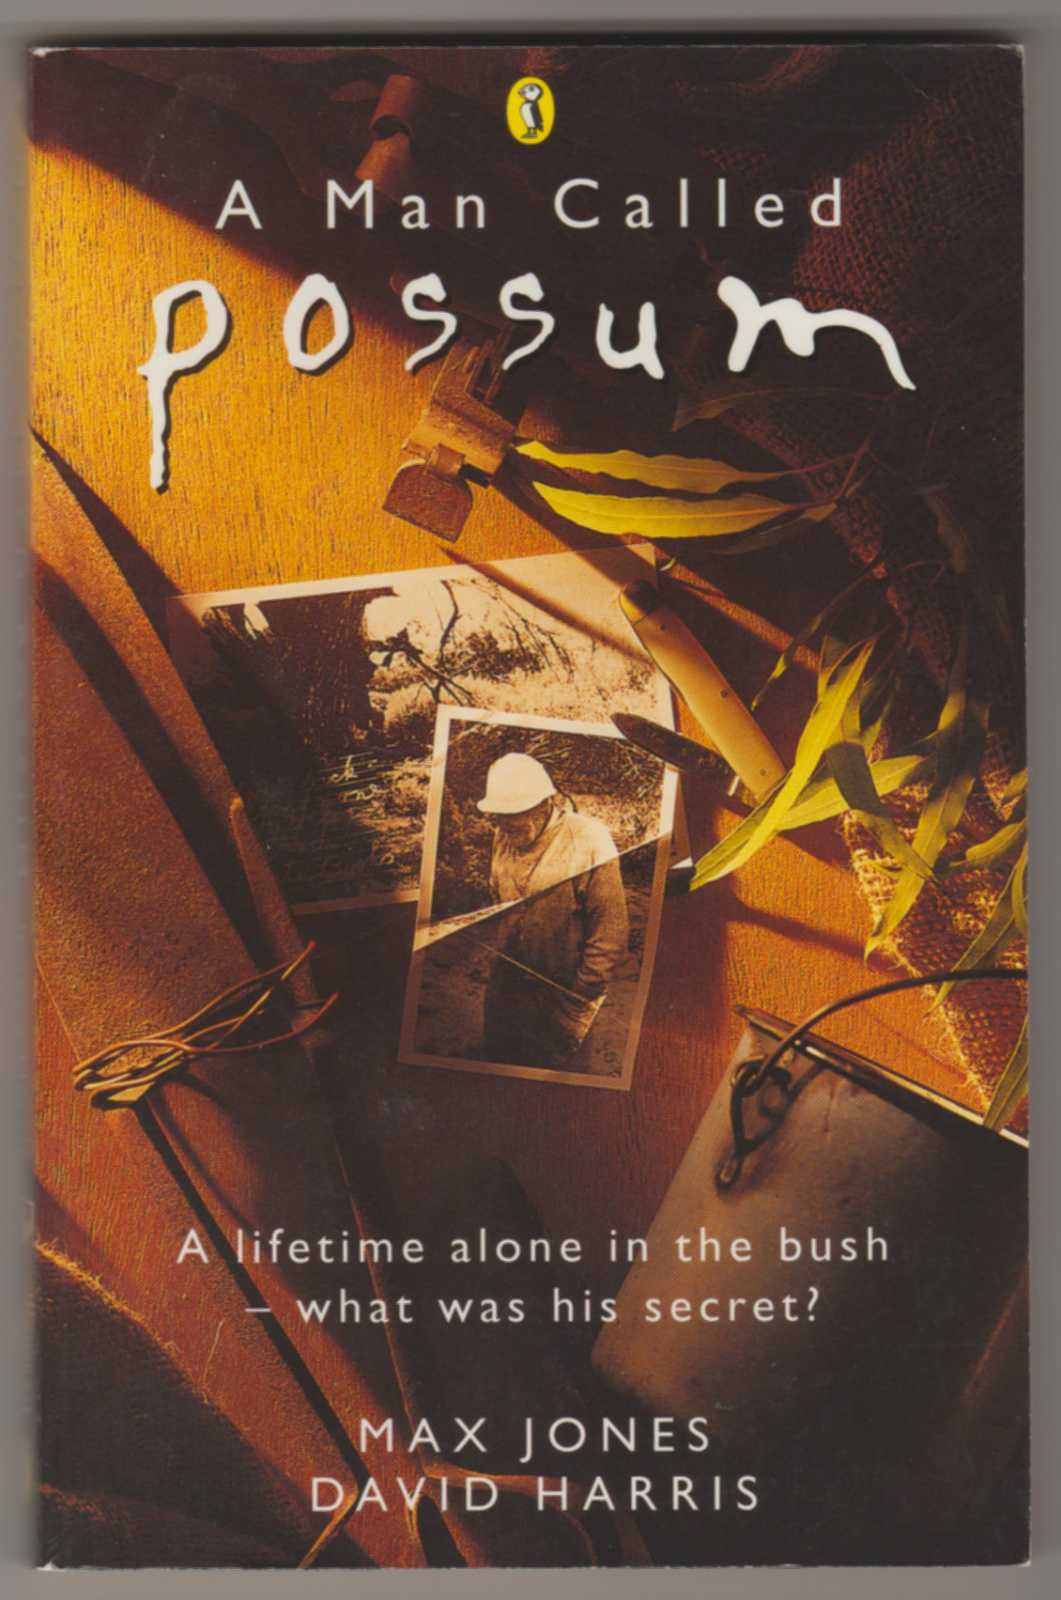 Image for A MAN CALLED POSSUM